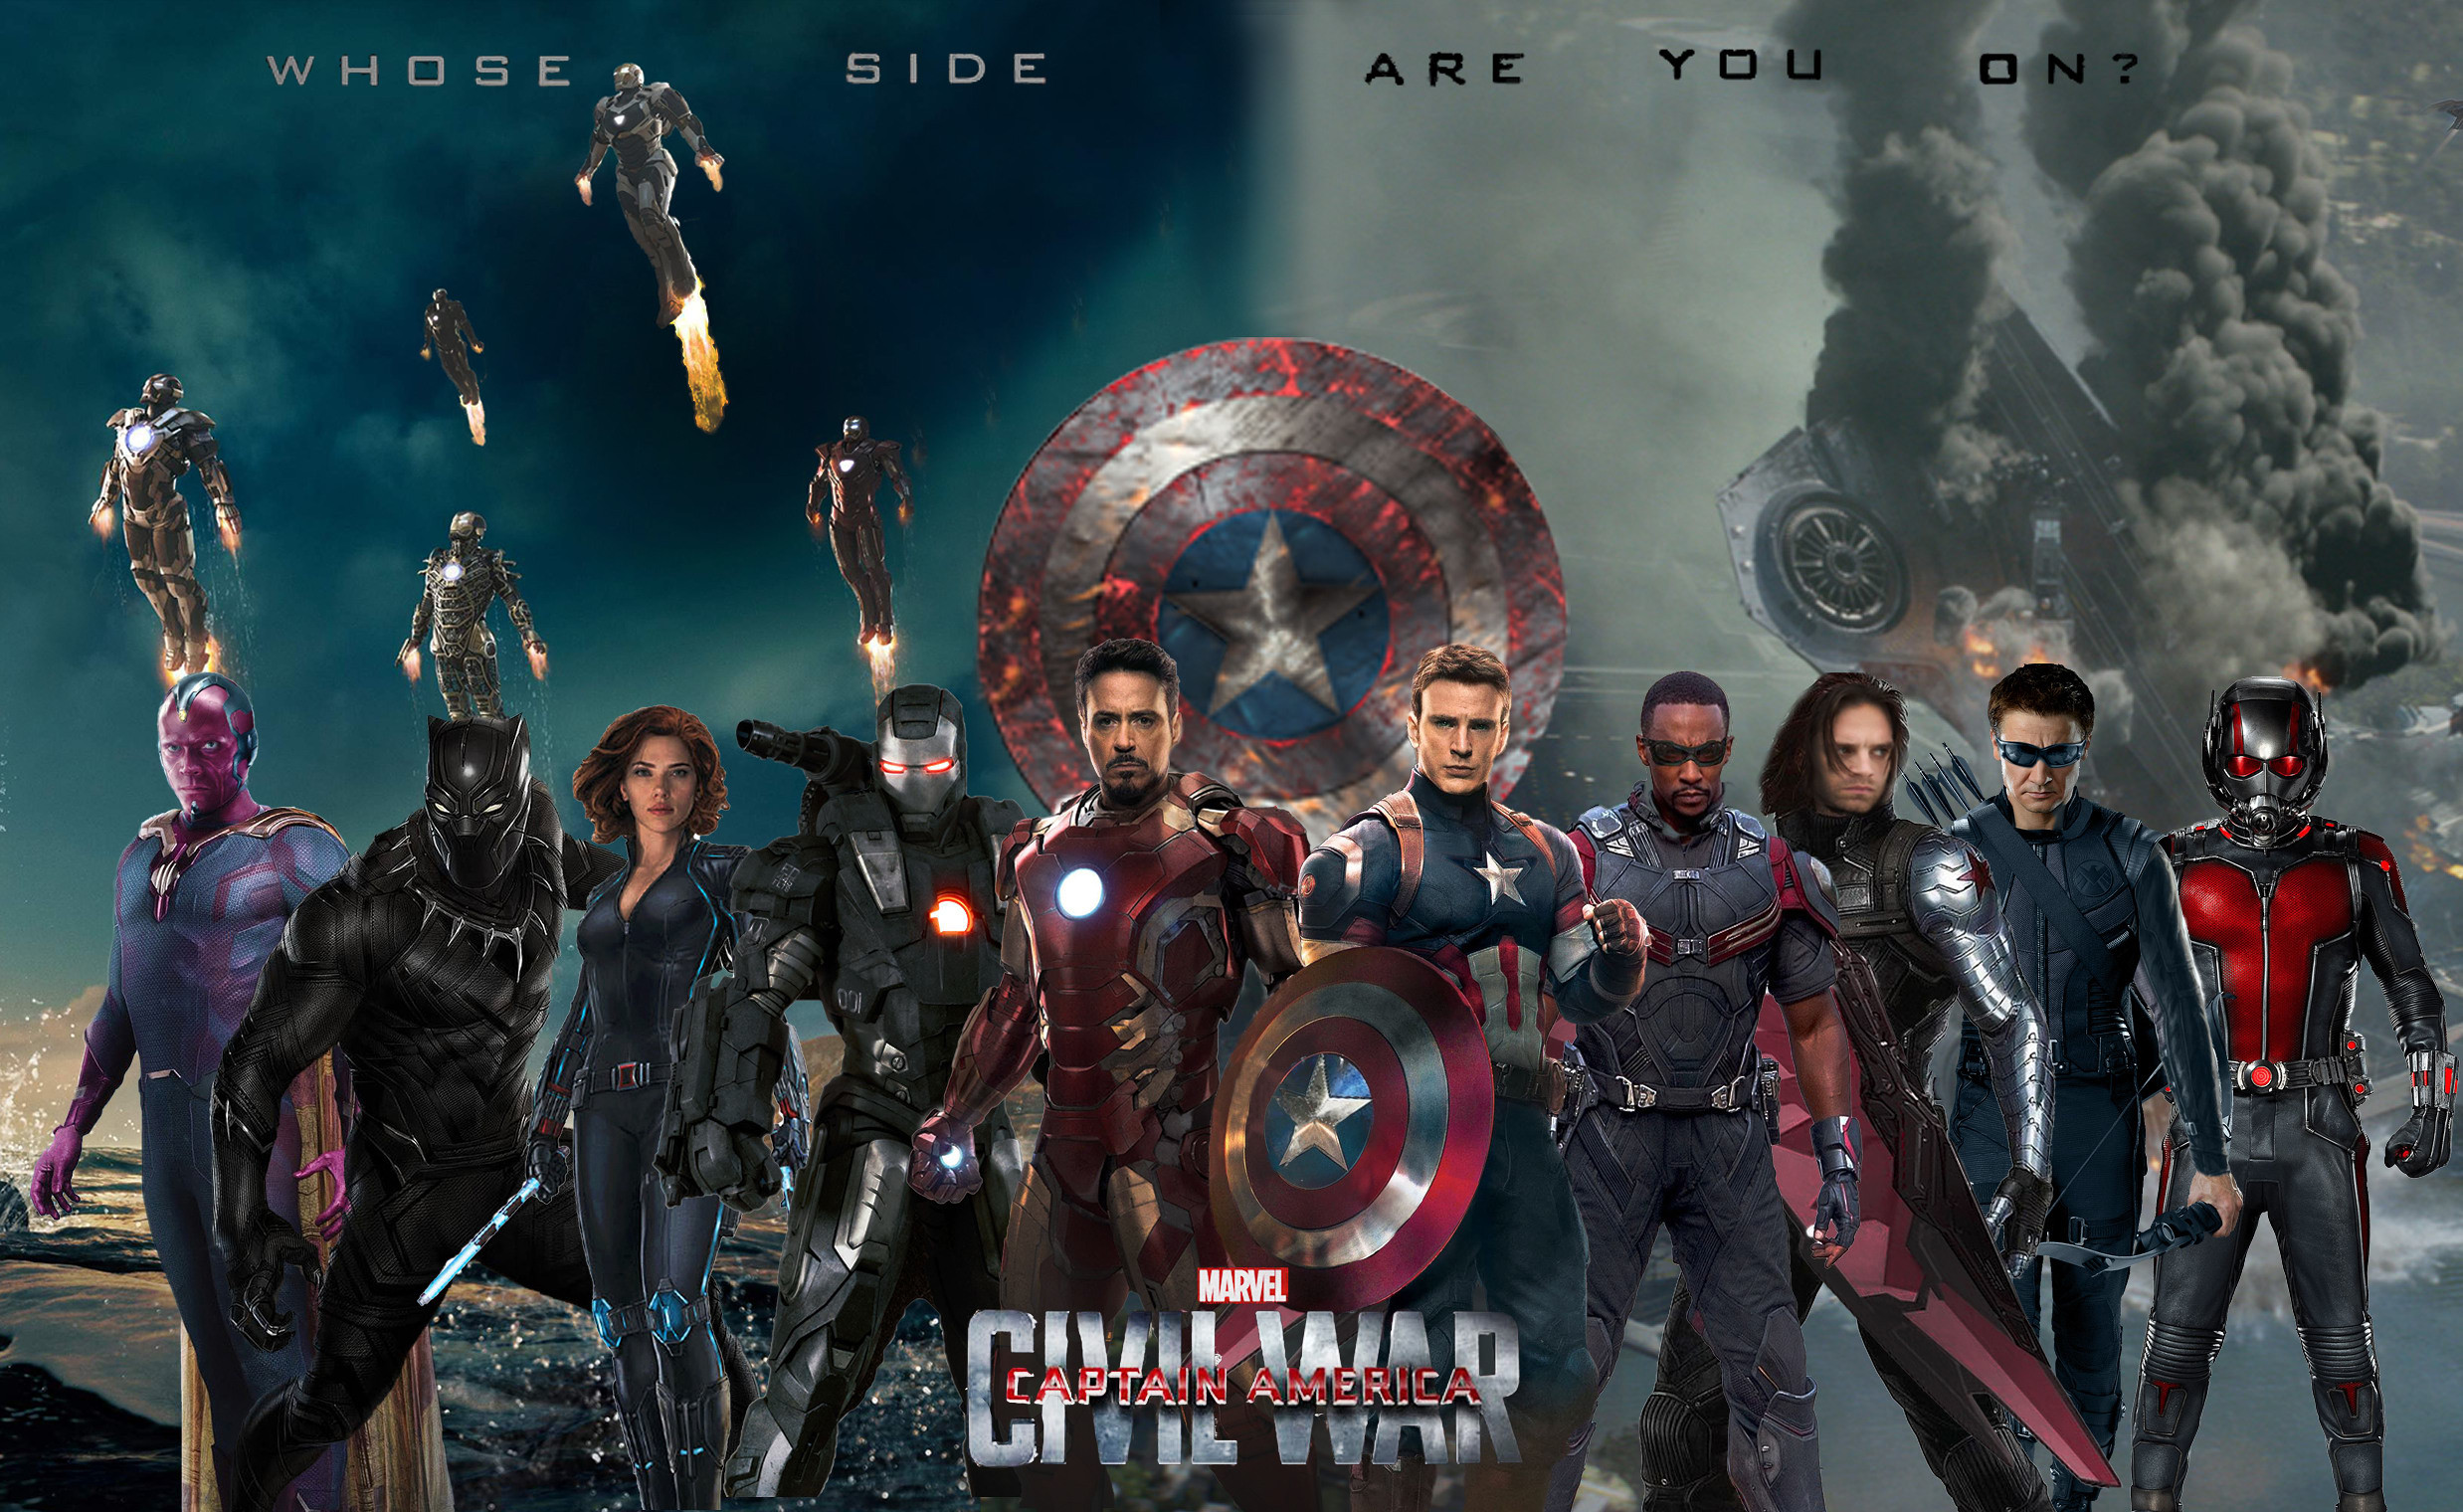 Can we get a Captain America team, Iron Man team, and both team bundles. I  would like to buy team Cap costumes.